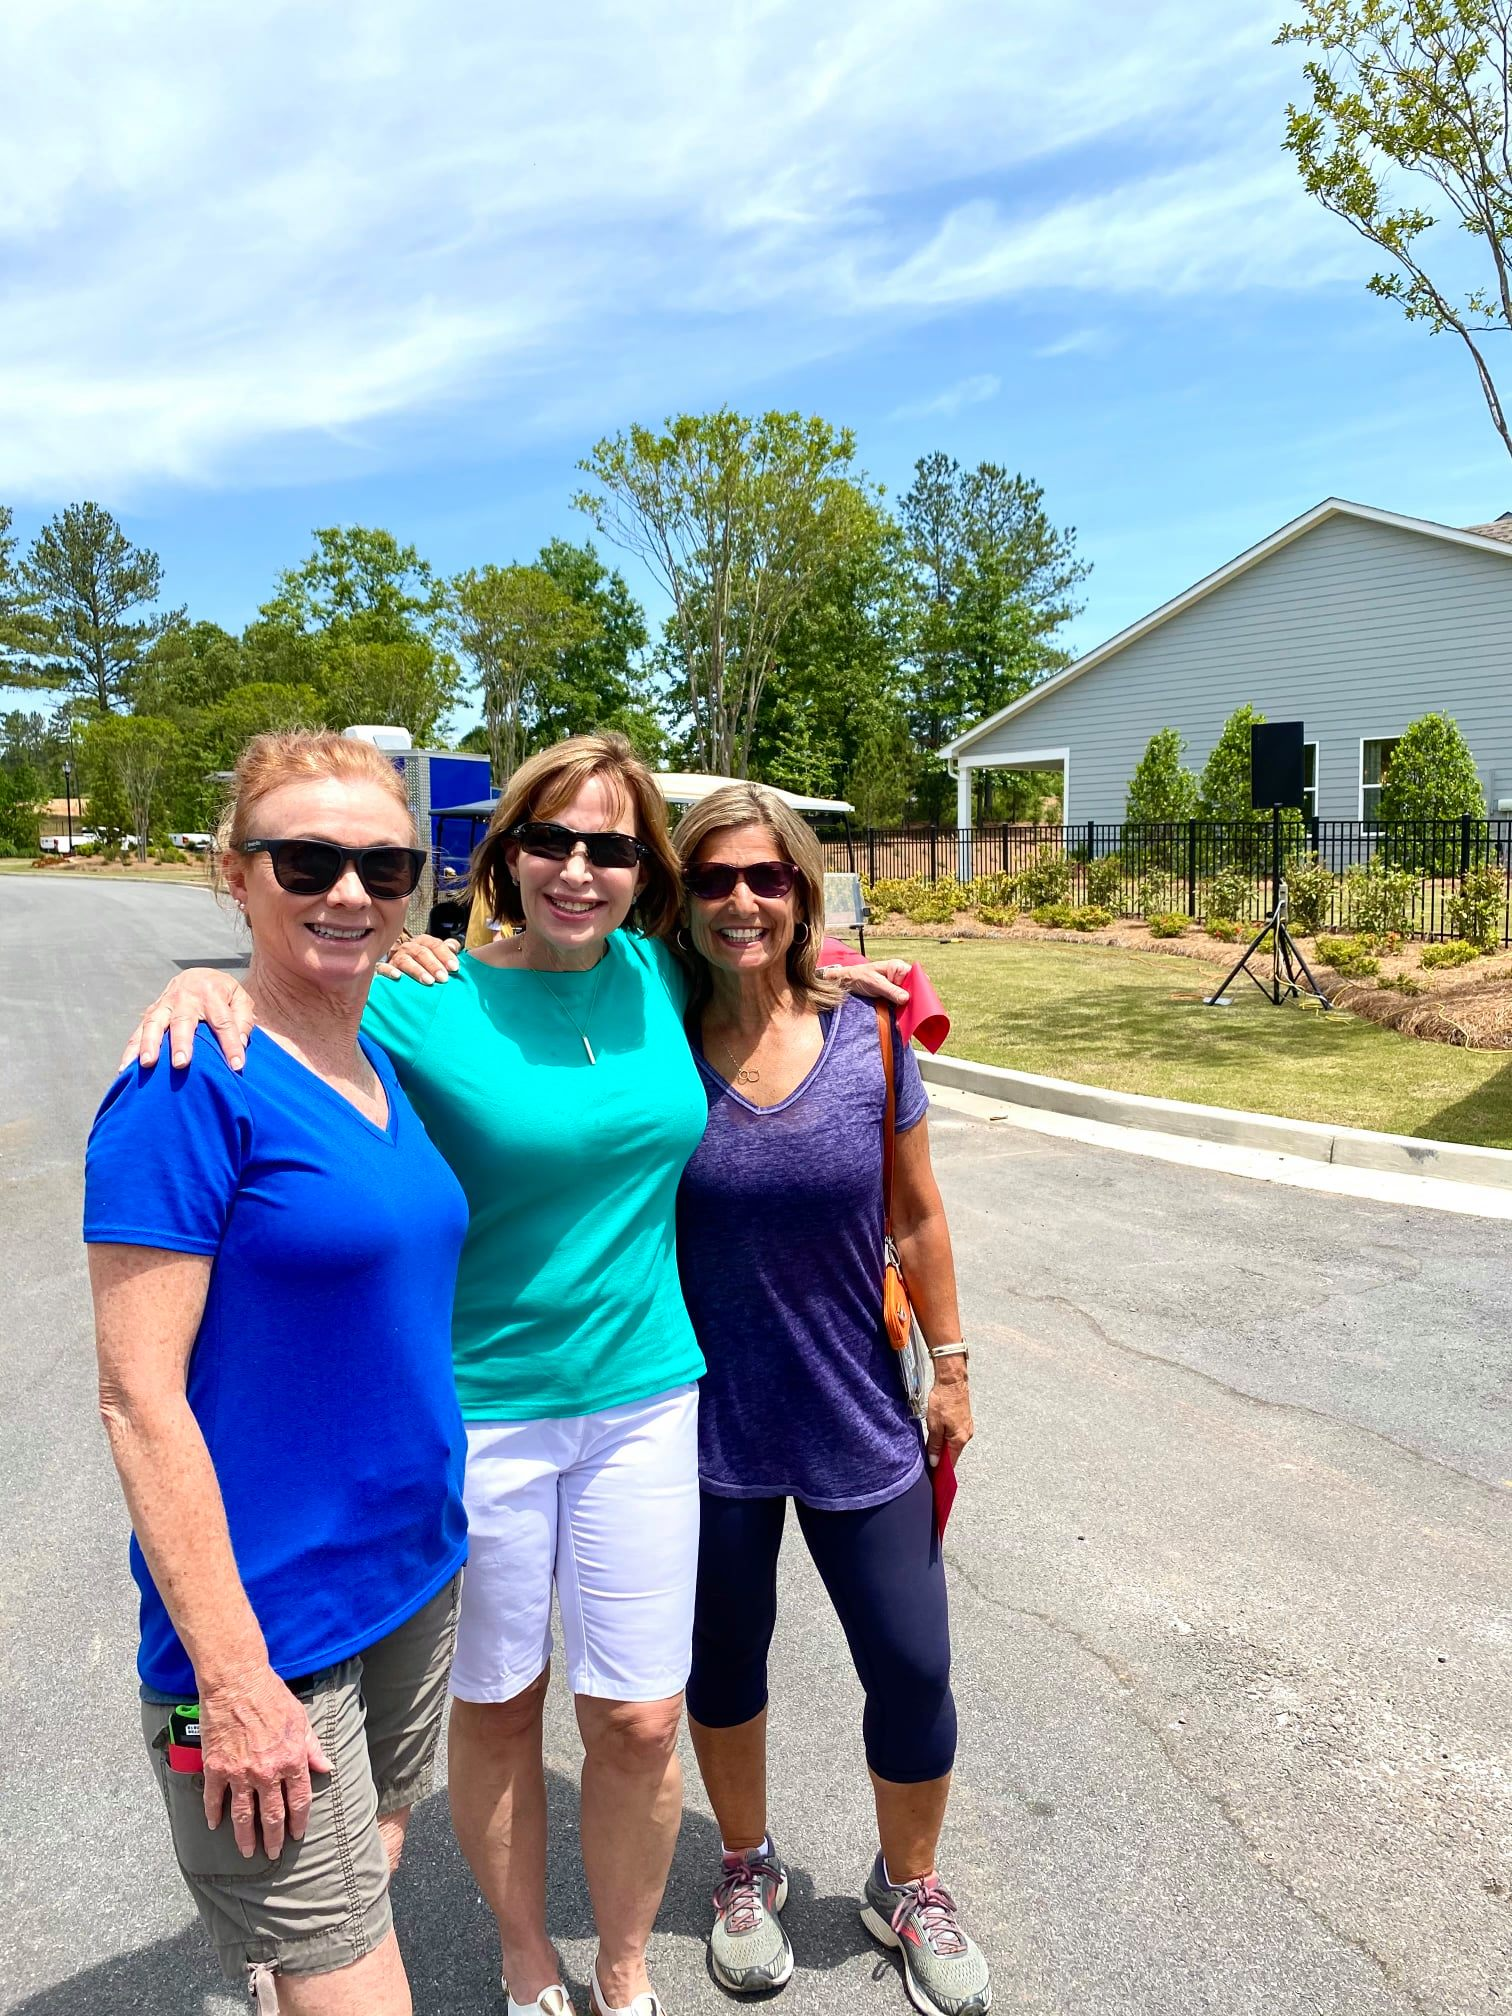 Cresswind Georgia residents posing and smiling at Hoschton Day in front of the model home park